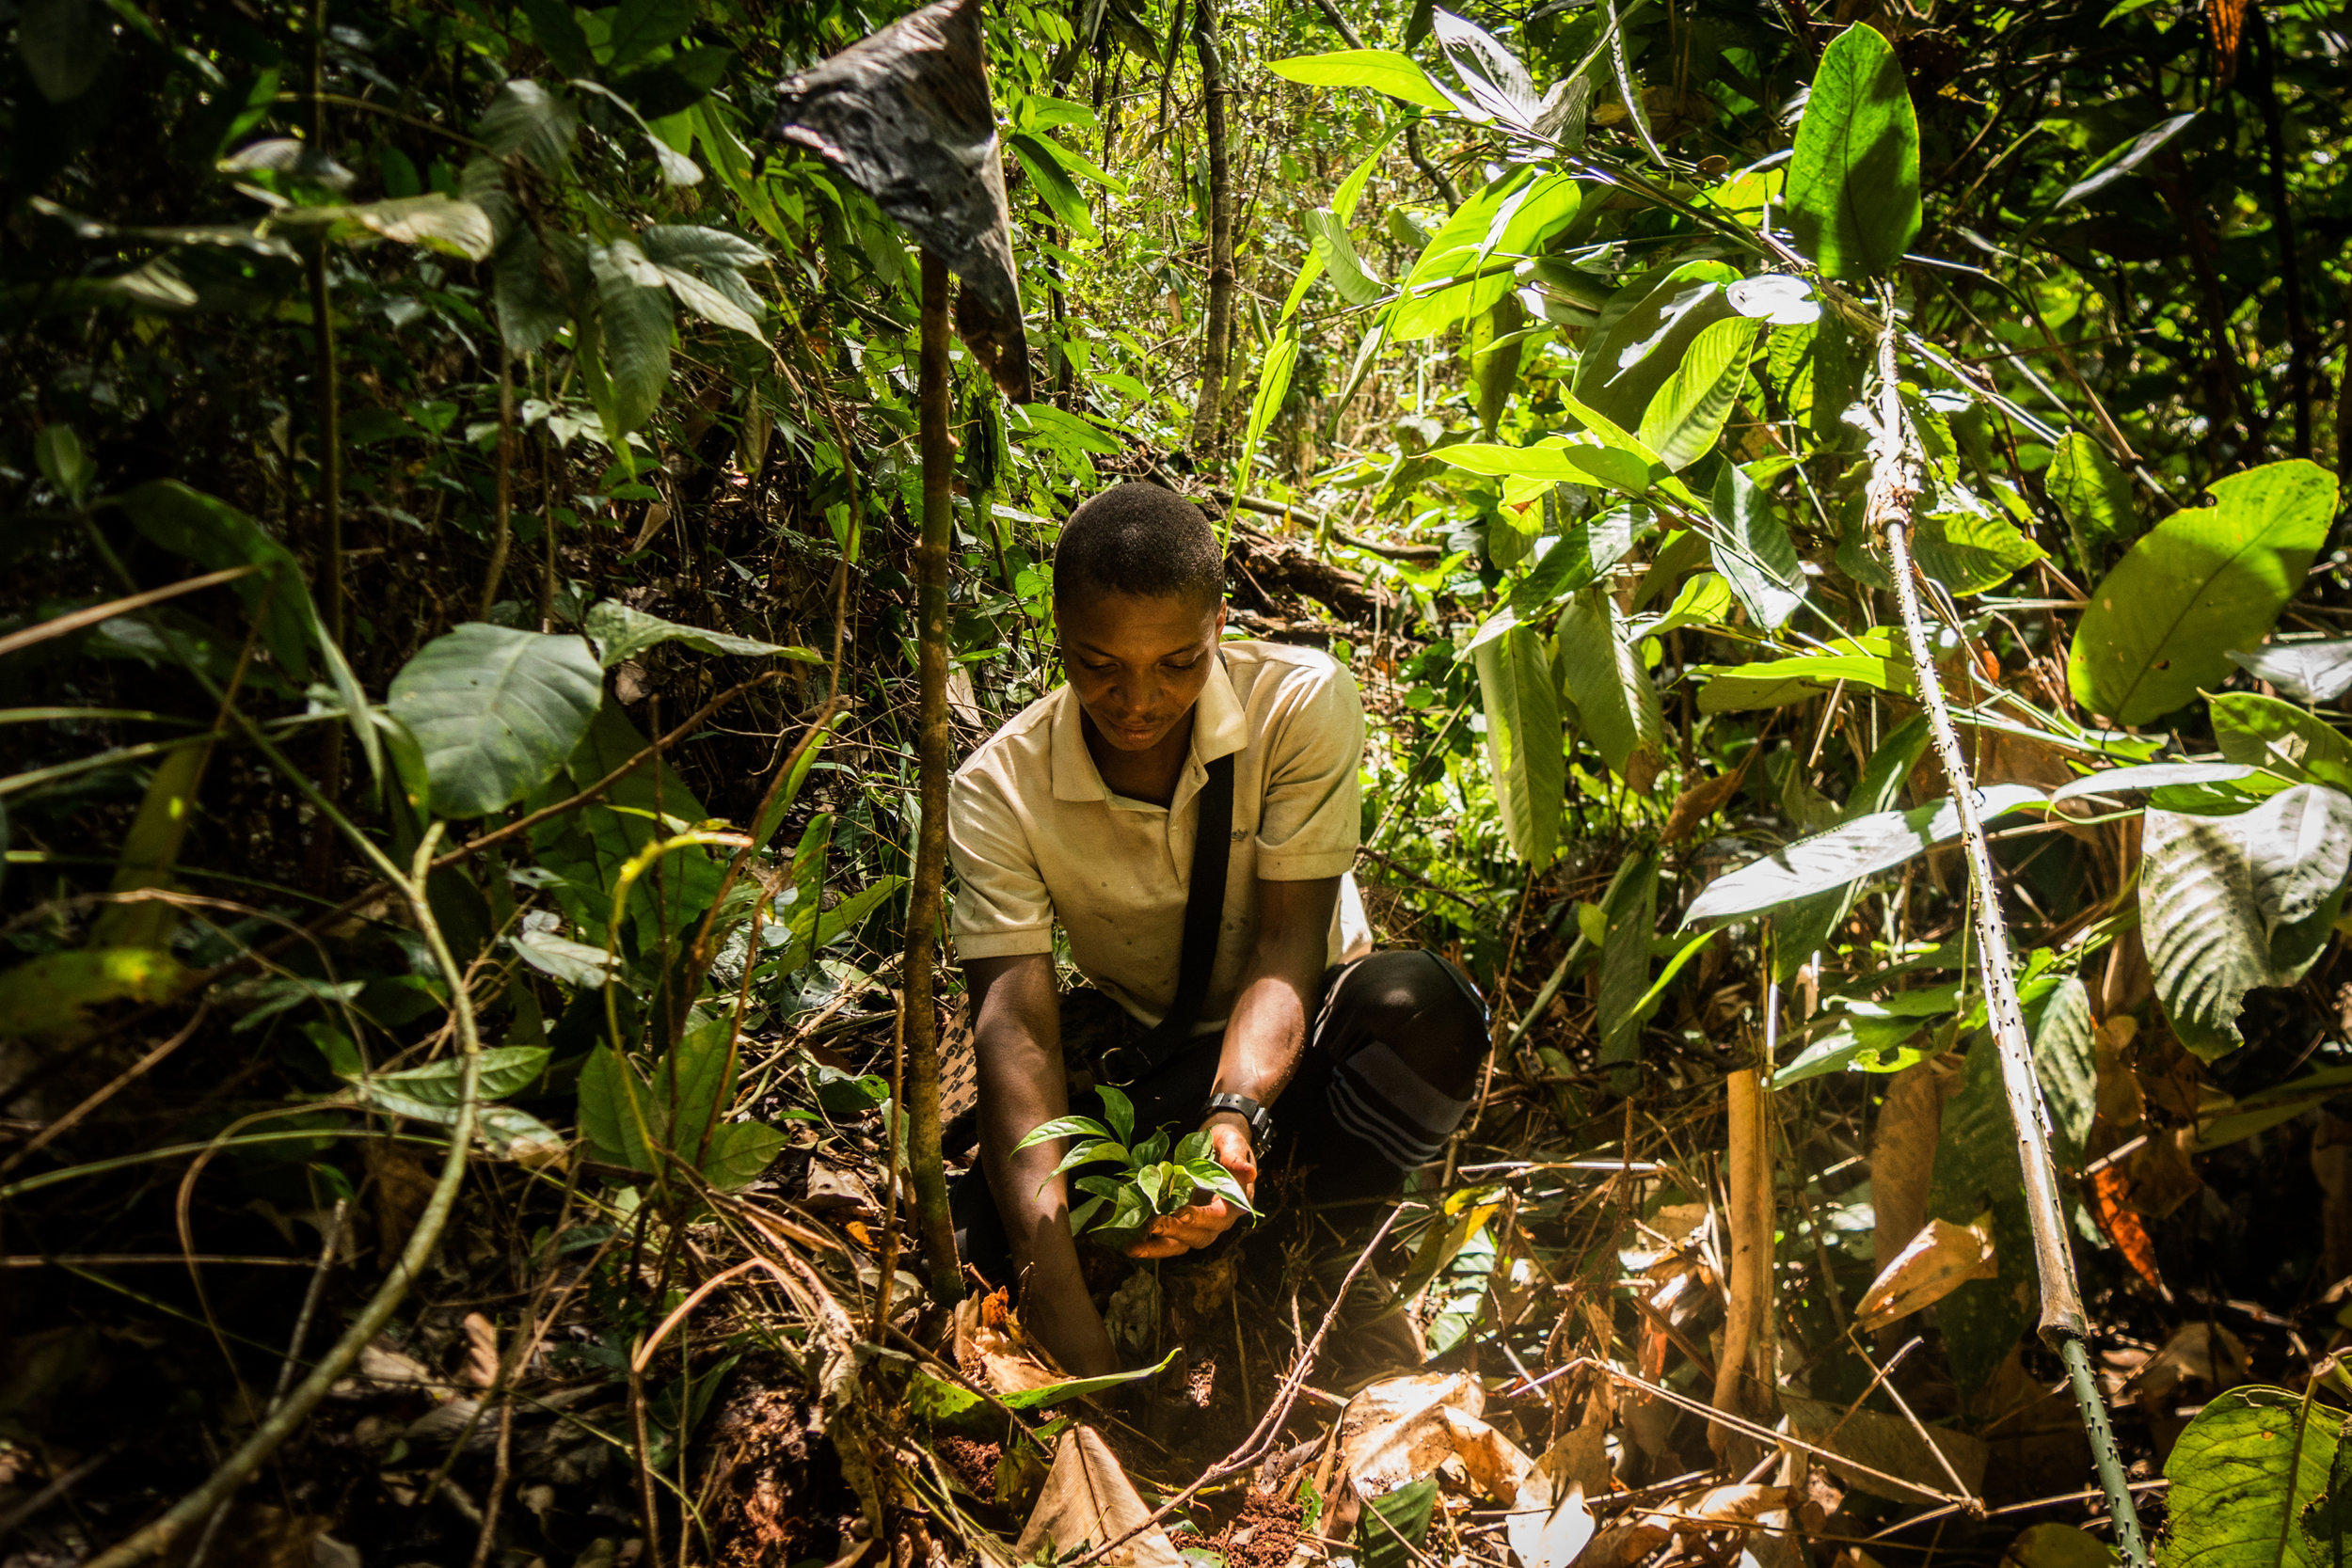 """Noël Nakere Dobo Nkouli finishes planting an ebony sapling in the Congo Basin forest of southeastern Cameroon. """"These trees,"""" he says, """"are our heritage."""" PHOTOGRAPH BY TIM MCDONNELL"""